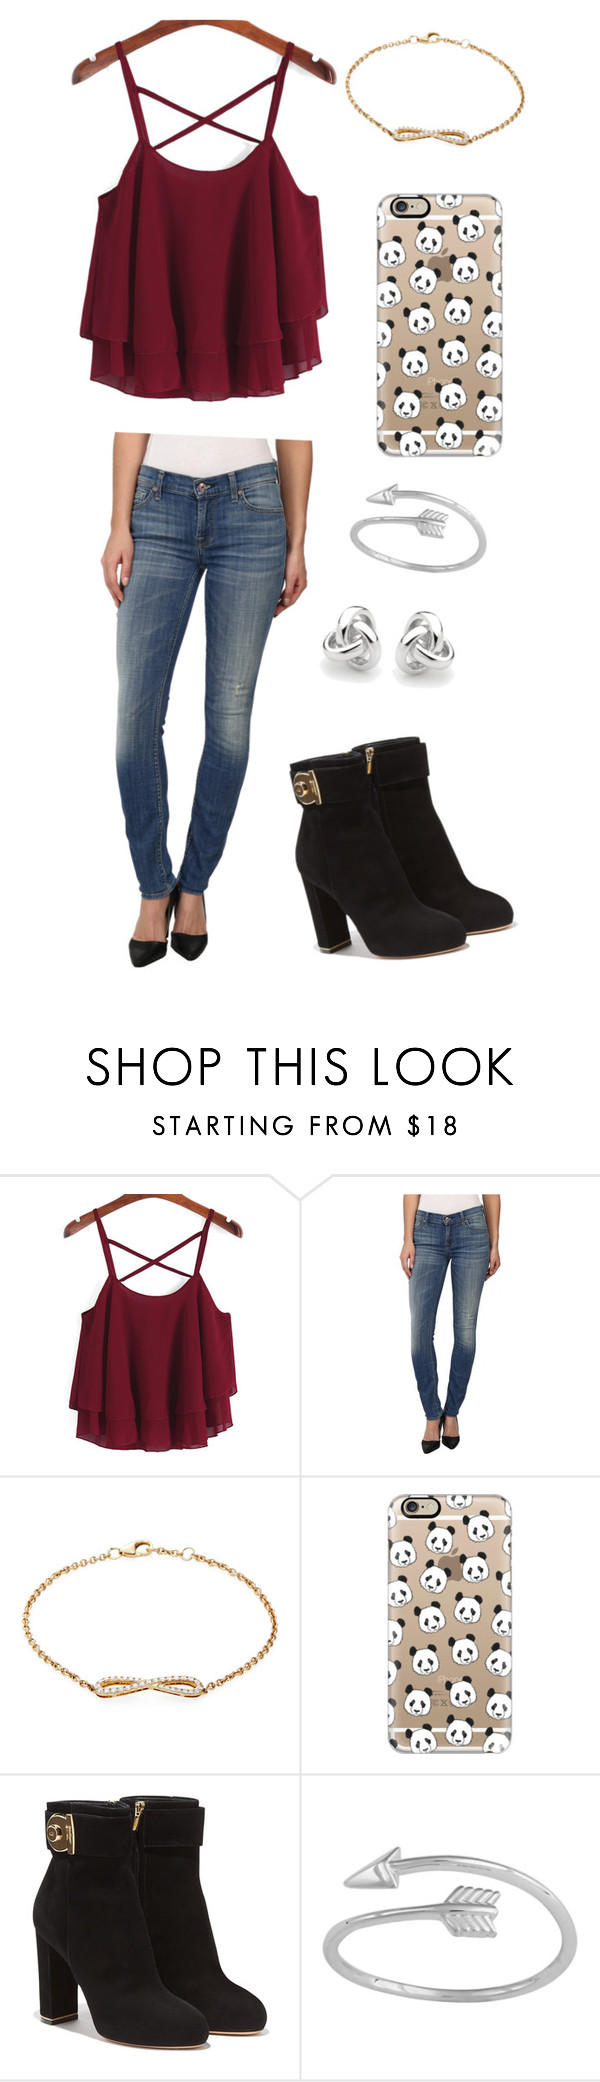 """""""Idk what to name this"""" by squidney12 ❤ liked on Polyvore featuring 7 For All Mankind, Nephora, Casetify, Salvatore Ferragamo and Georgini"""